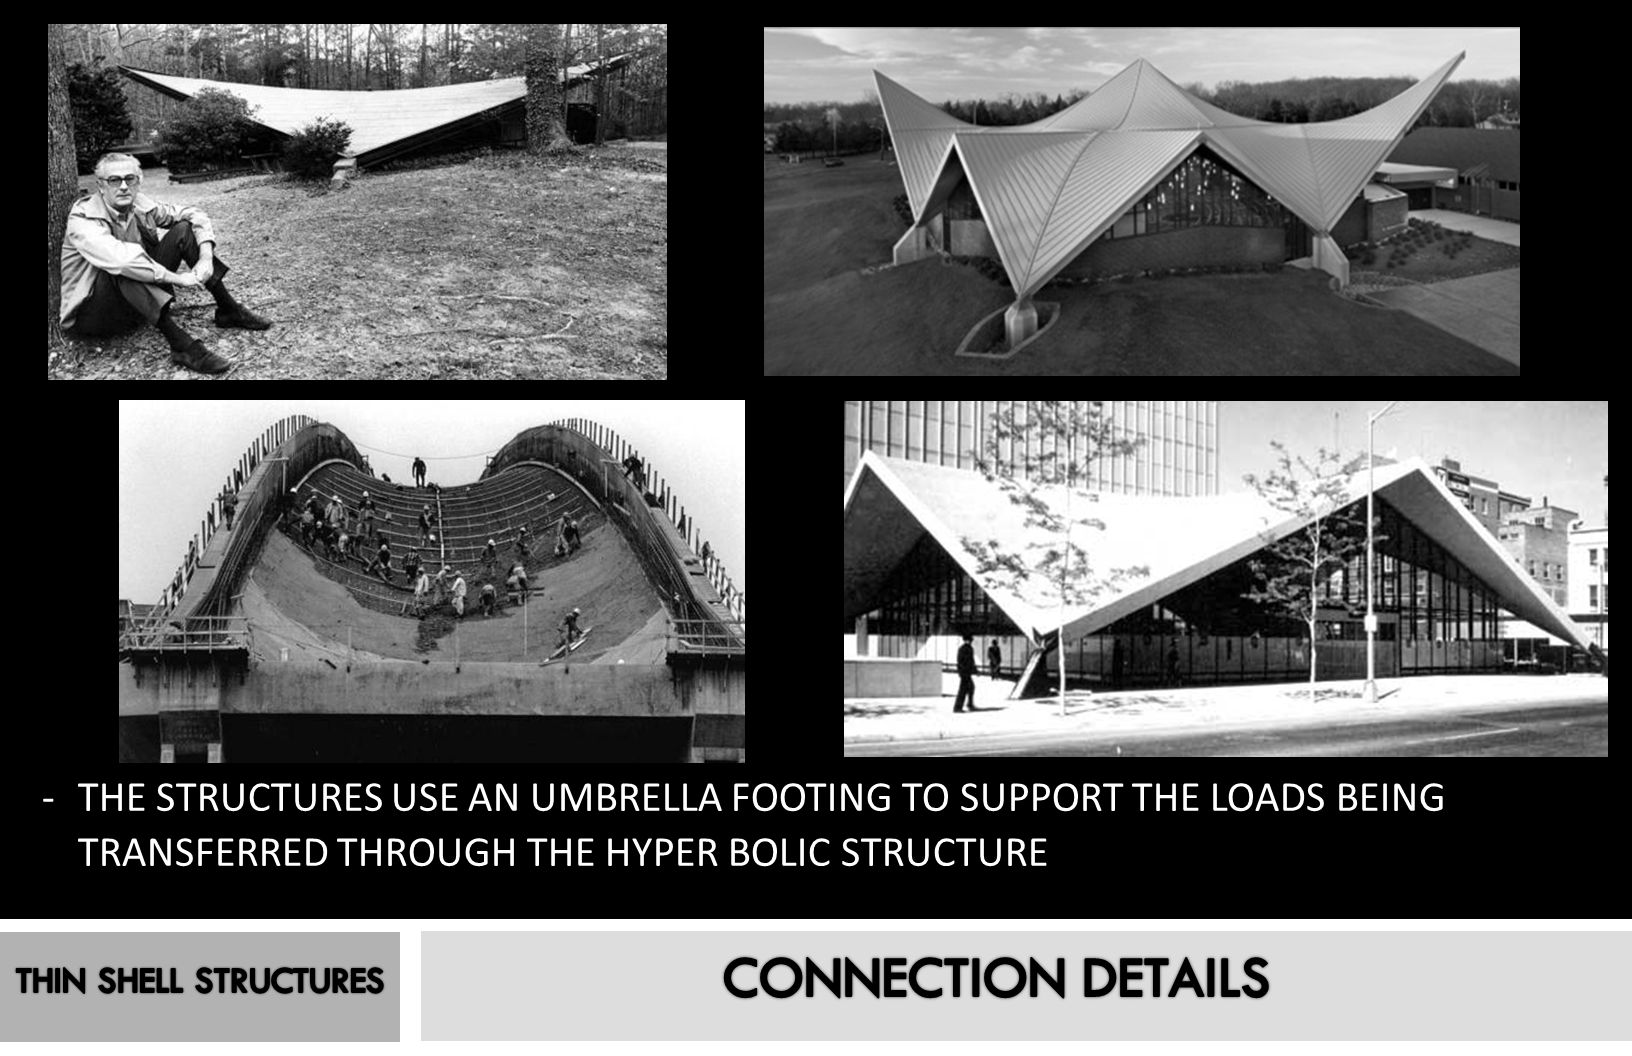 THE STRUCTURES USE AN UMBRELLA FOOTING TO SUPPORT THE LOADS BEING TRANSFERRED THROUGH THE HYPER BOLIC STRUCTURE